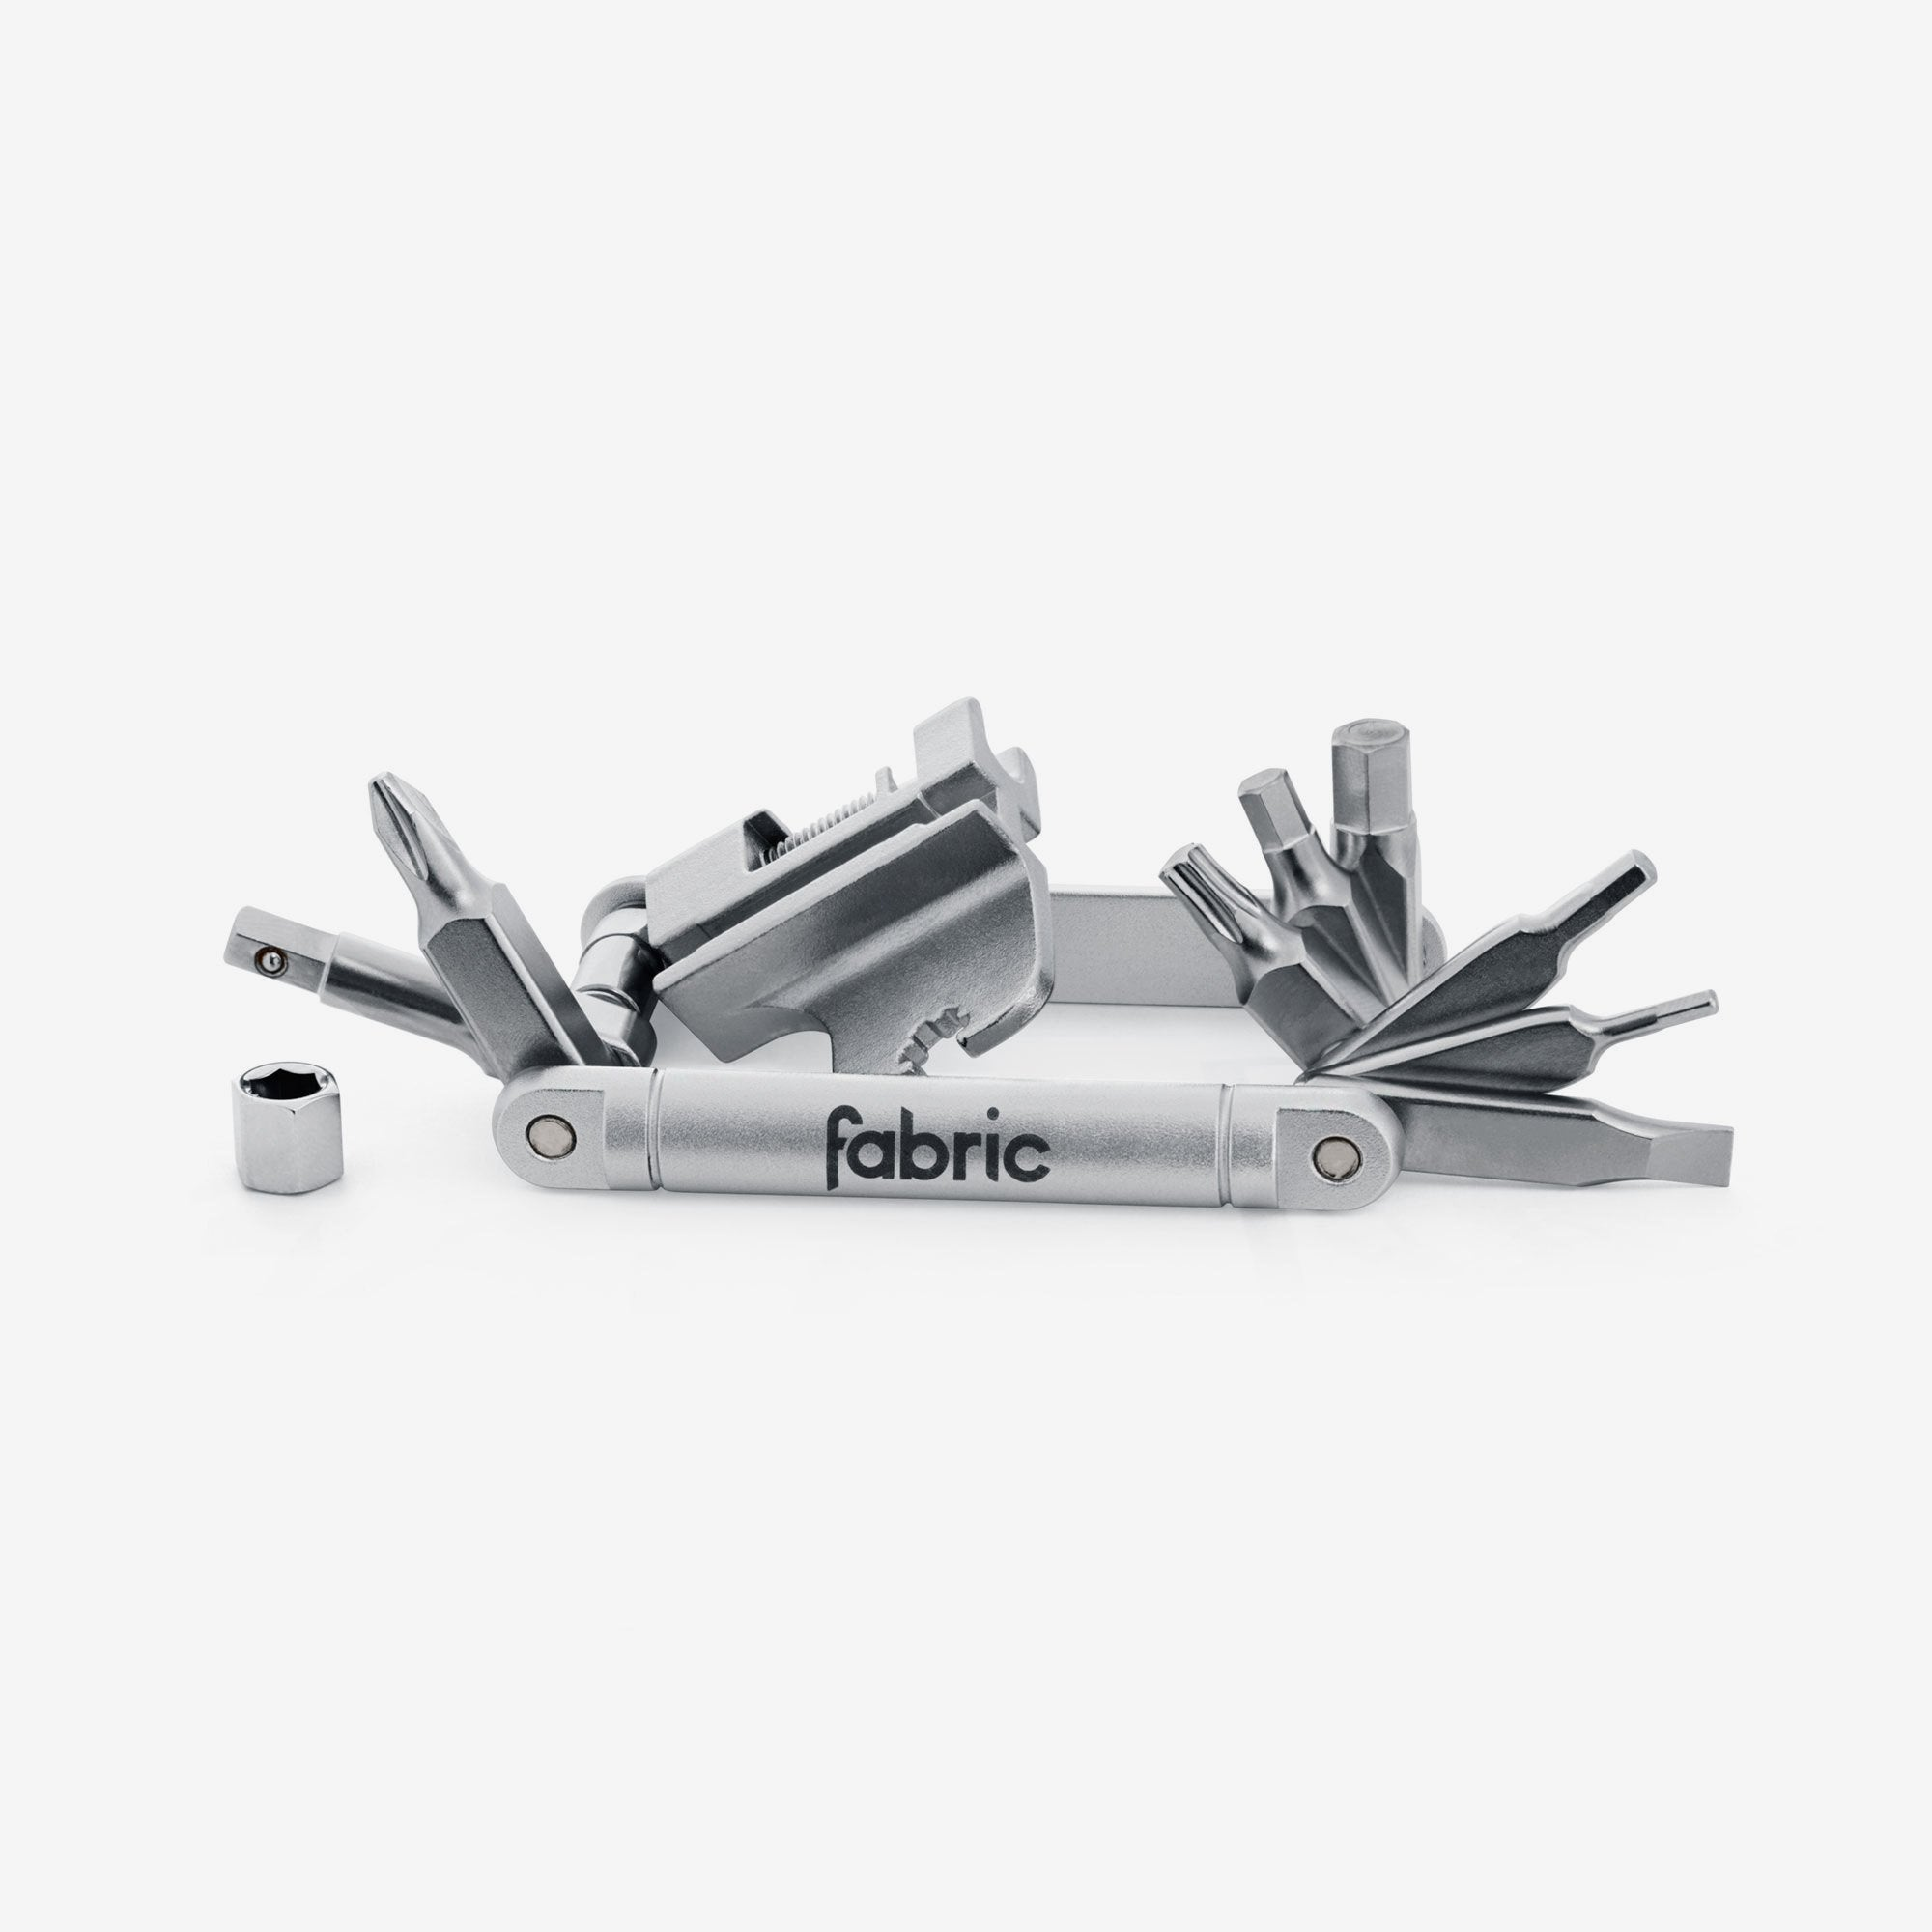 Fabric 16 in 1 Compact Multitool - Cycles Galleria Melbourne